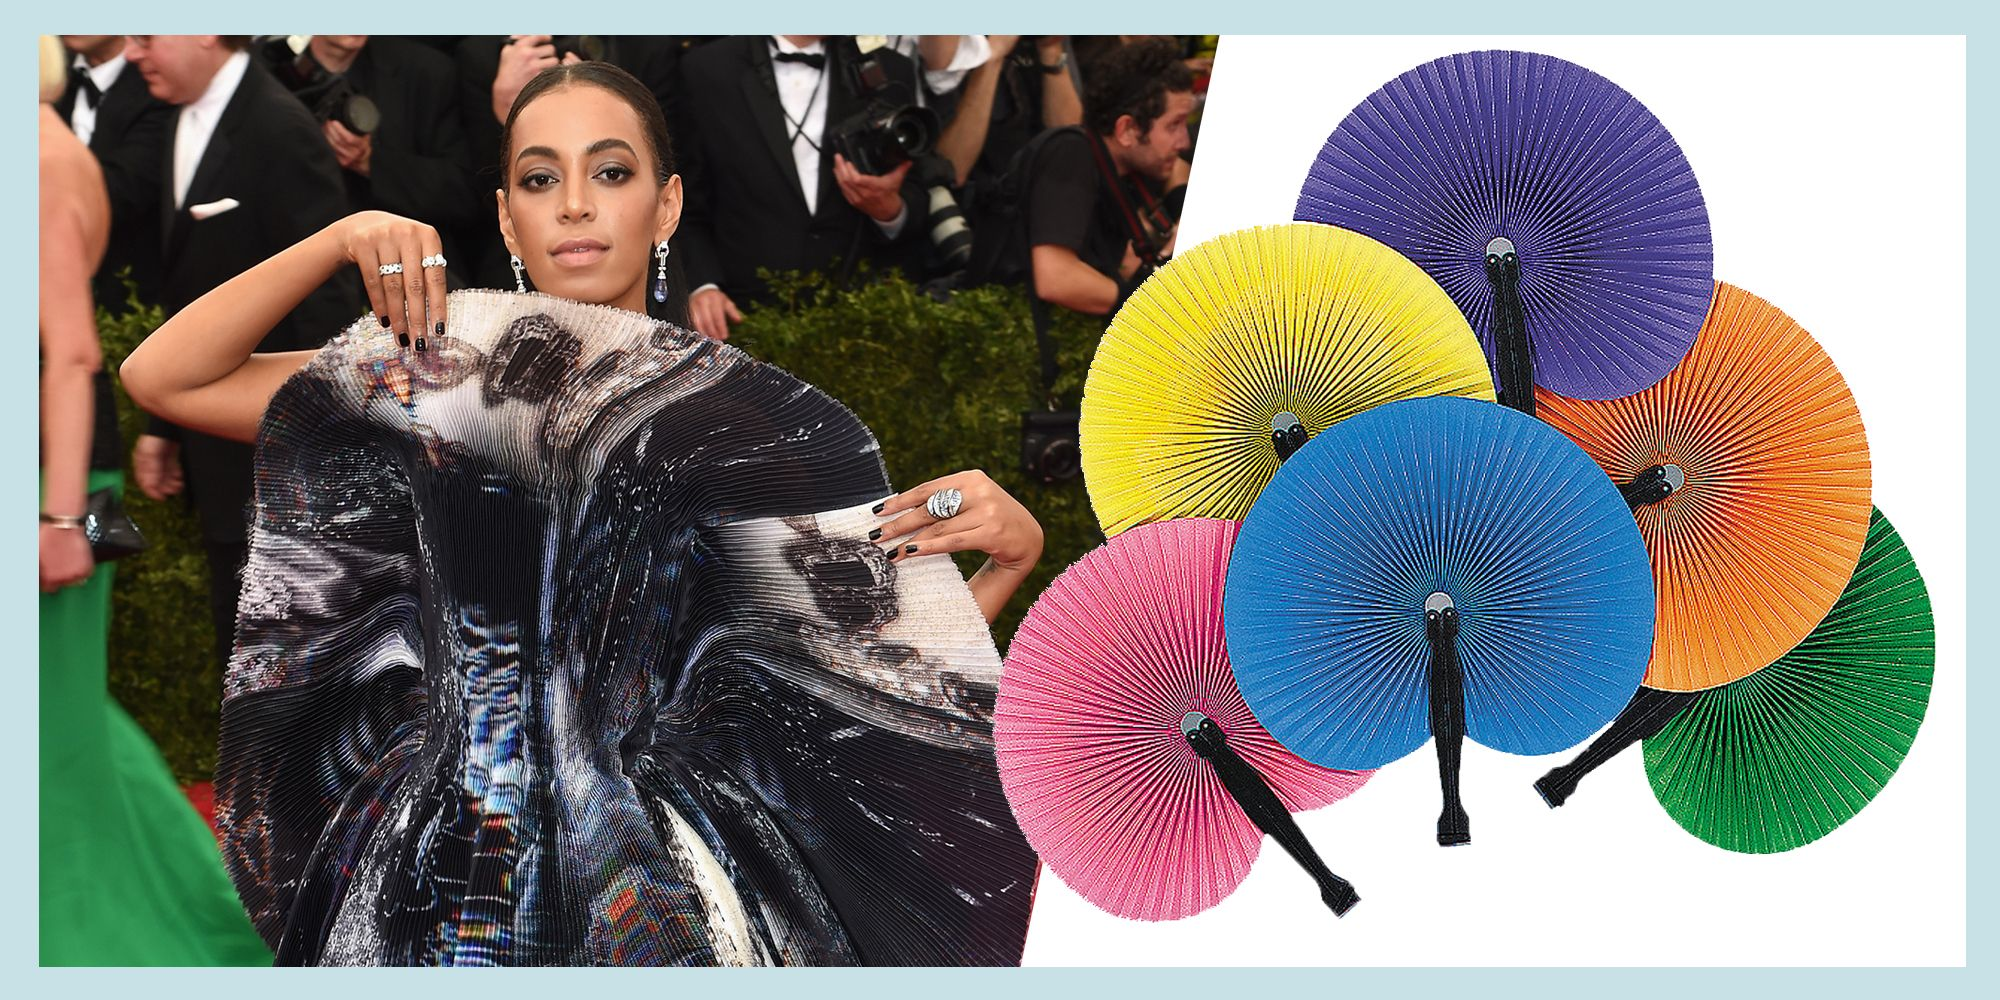 <p>It was the 2015 Met Gala. Giles Deacon made this solar-system-y dress, the likes of which we'd never seen before...unless you've encountered one of these hand fans in the wild. </p>